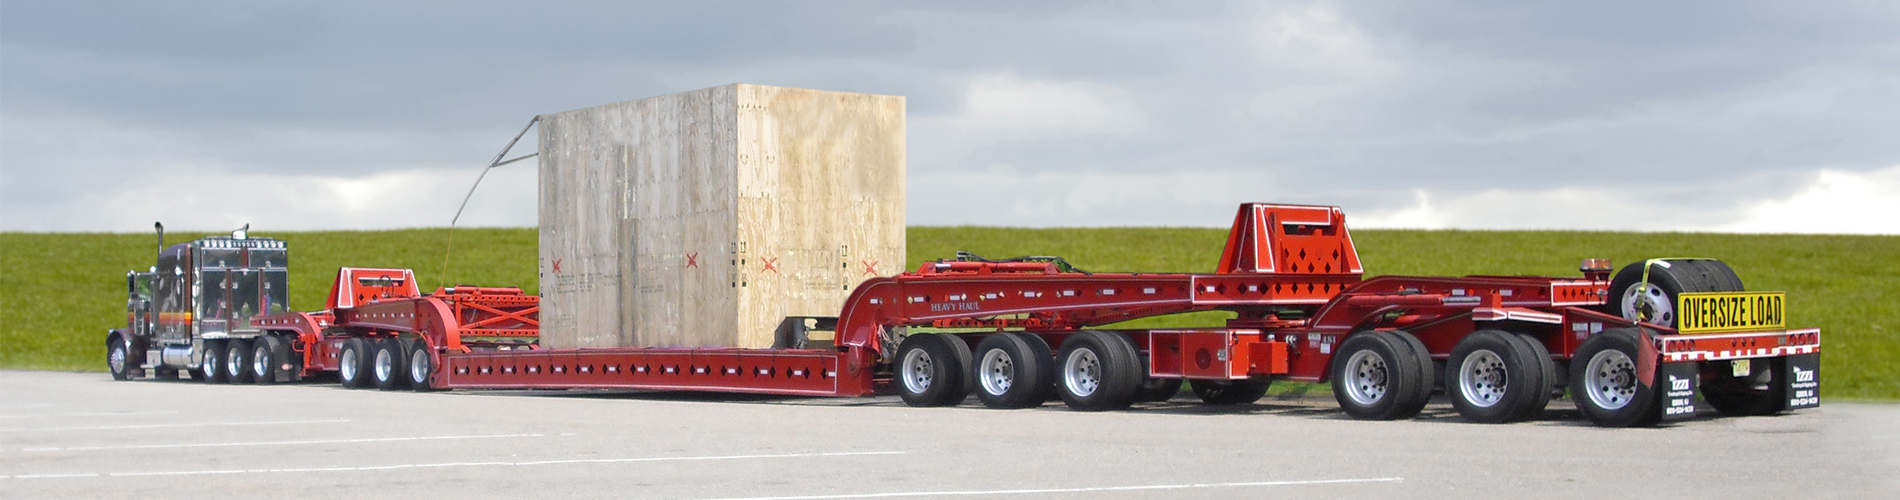 heavy haul red trailer with Izzi truck in NY NJ PA